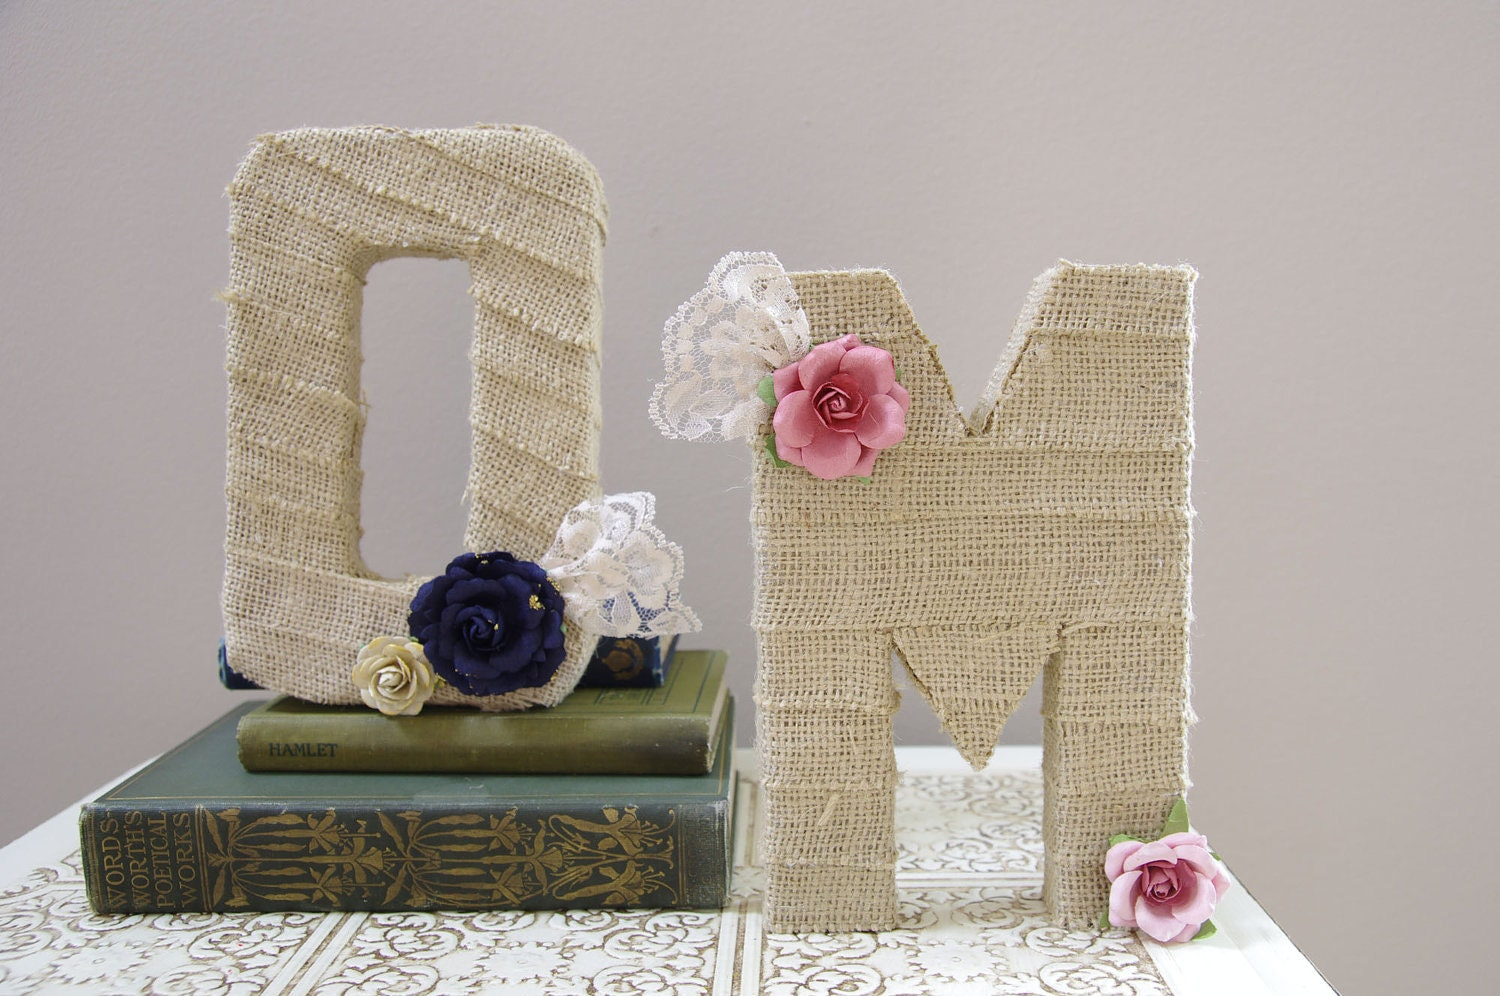 Burlap wrapped letter M - wedding decoration monogram for cake topper, table centerpiece